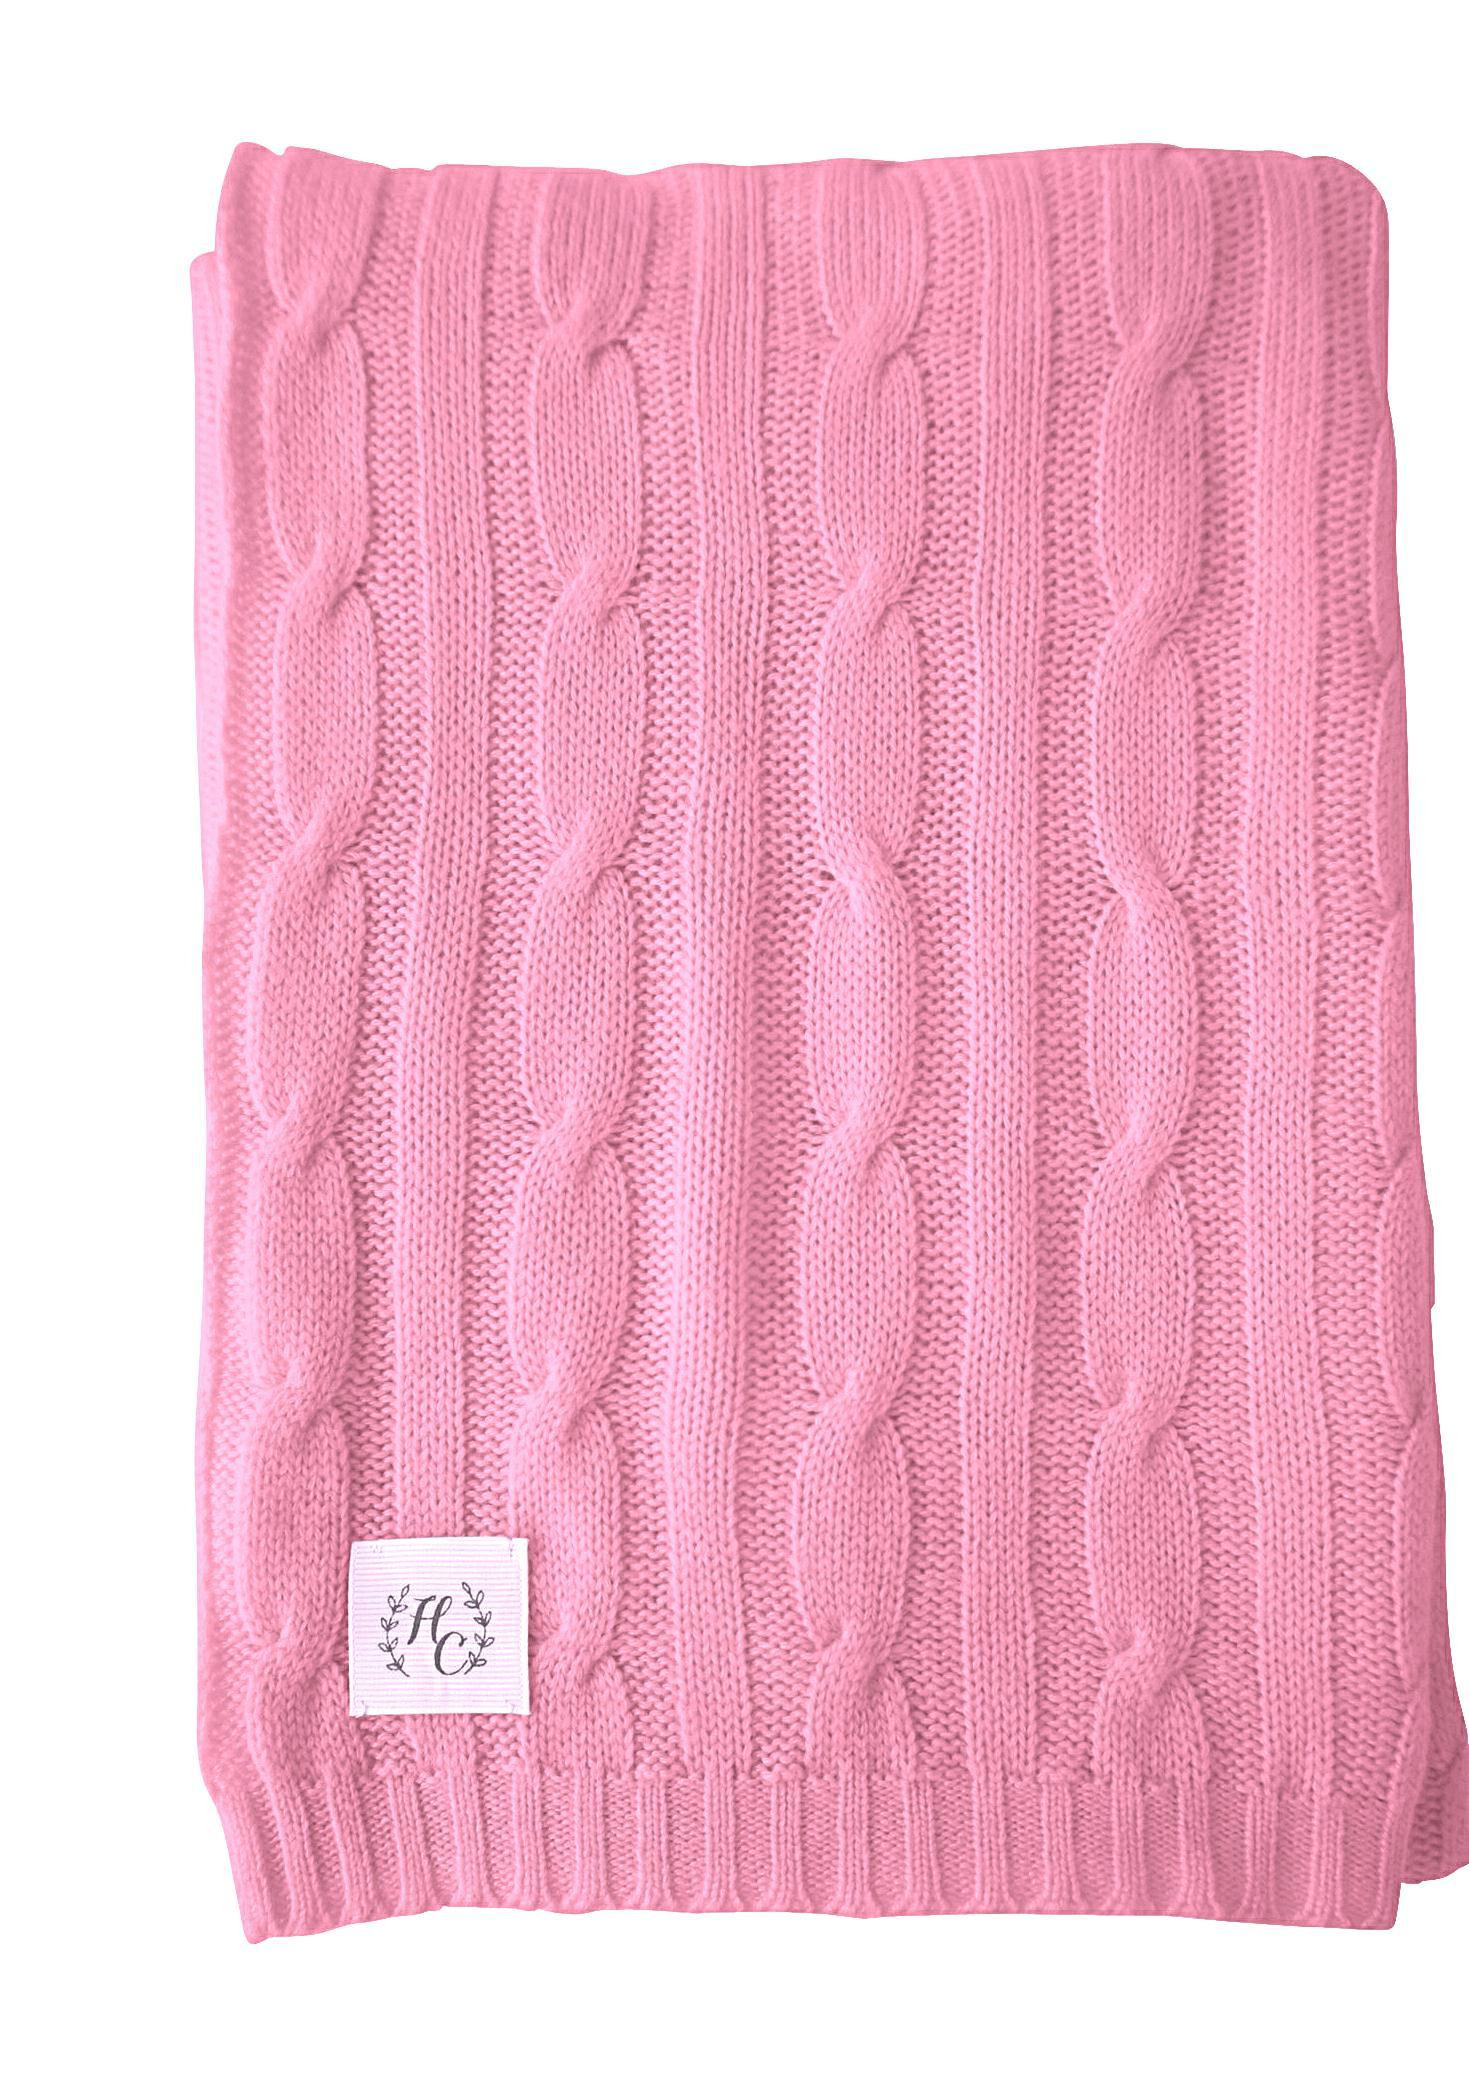 Unique New Cashmere Cable Knit Baby Blanket In Strawberry Girl S Cable Knit Baby Blanket Of Amazing 41 Photos Cable Knit Baby Blanket